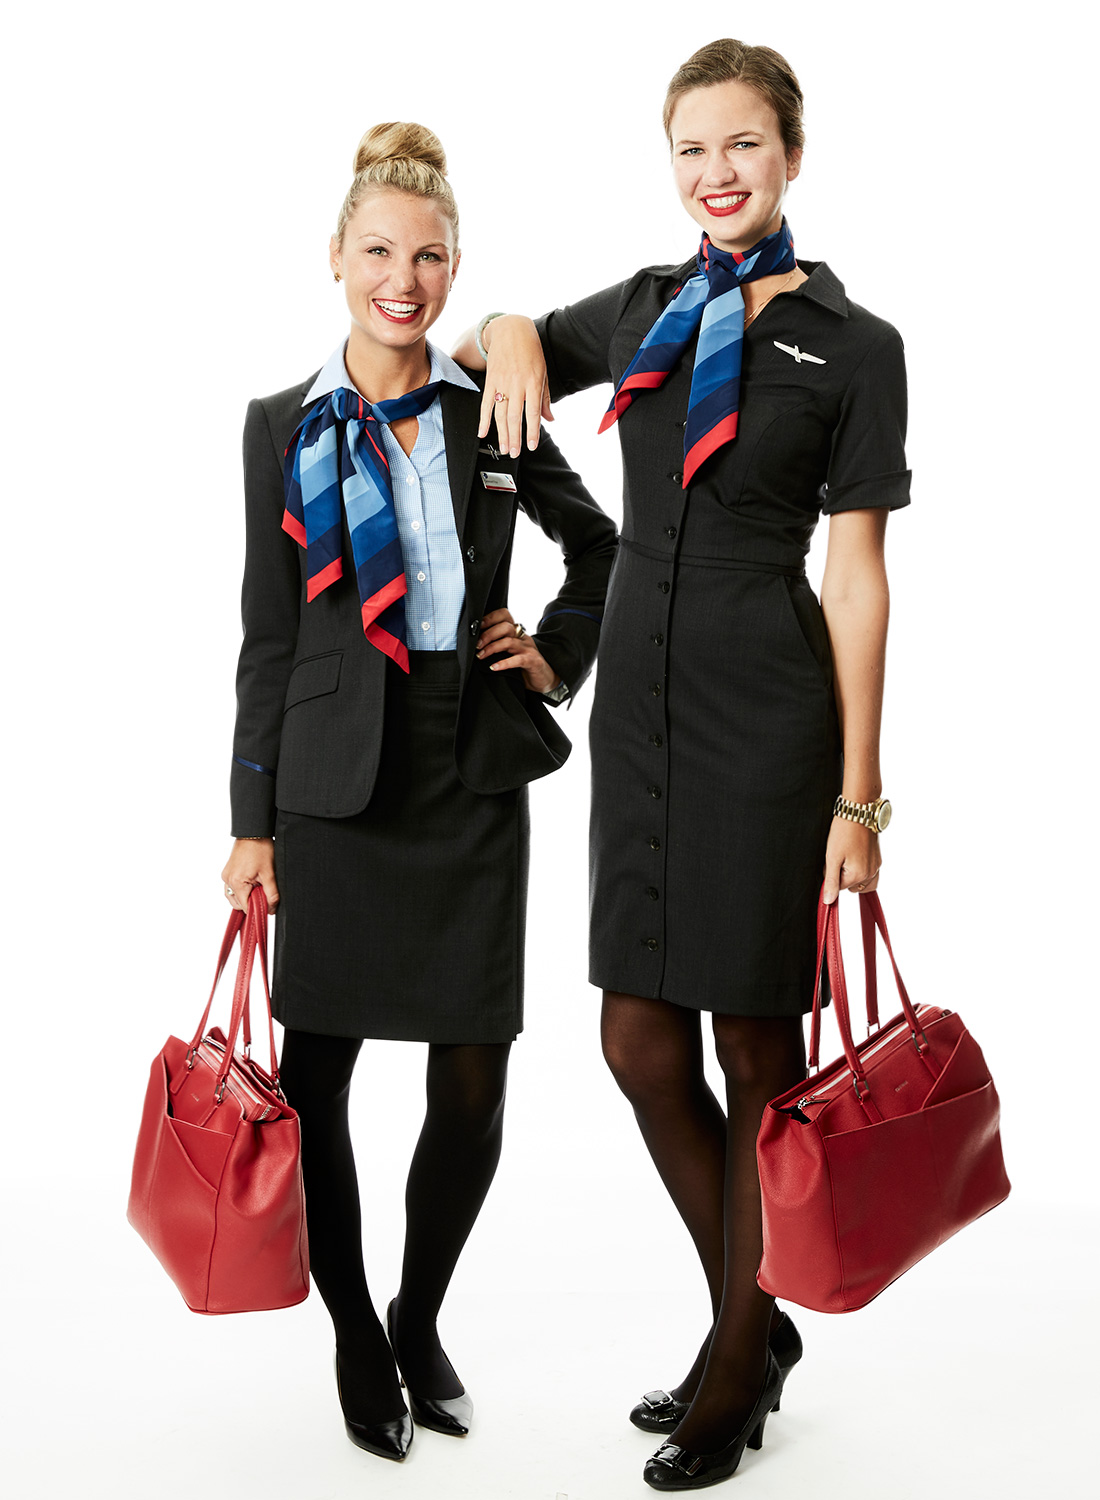 160920_AmericanAirlines_Portraits_By_BriJohnson_0030.jpg